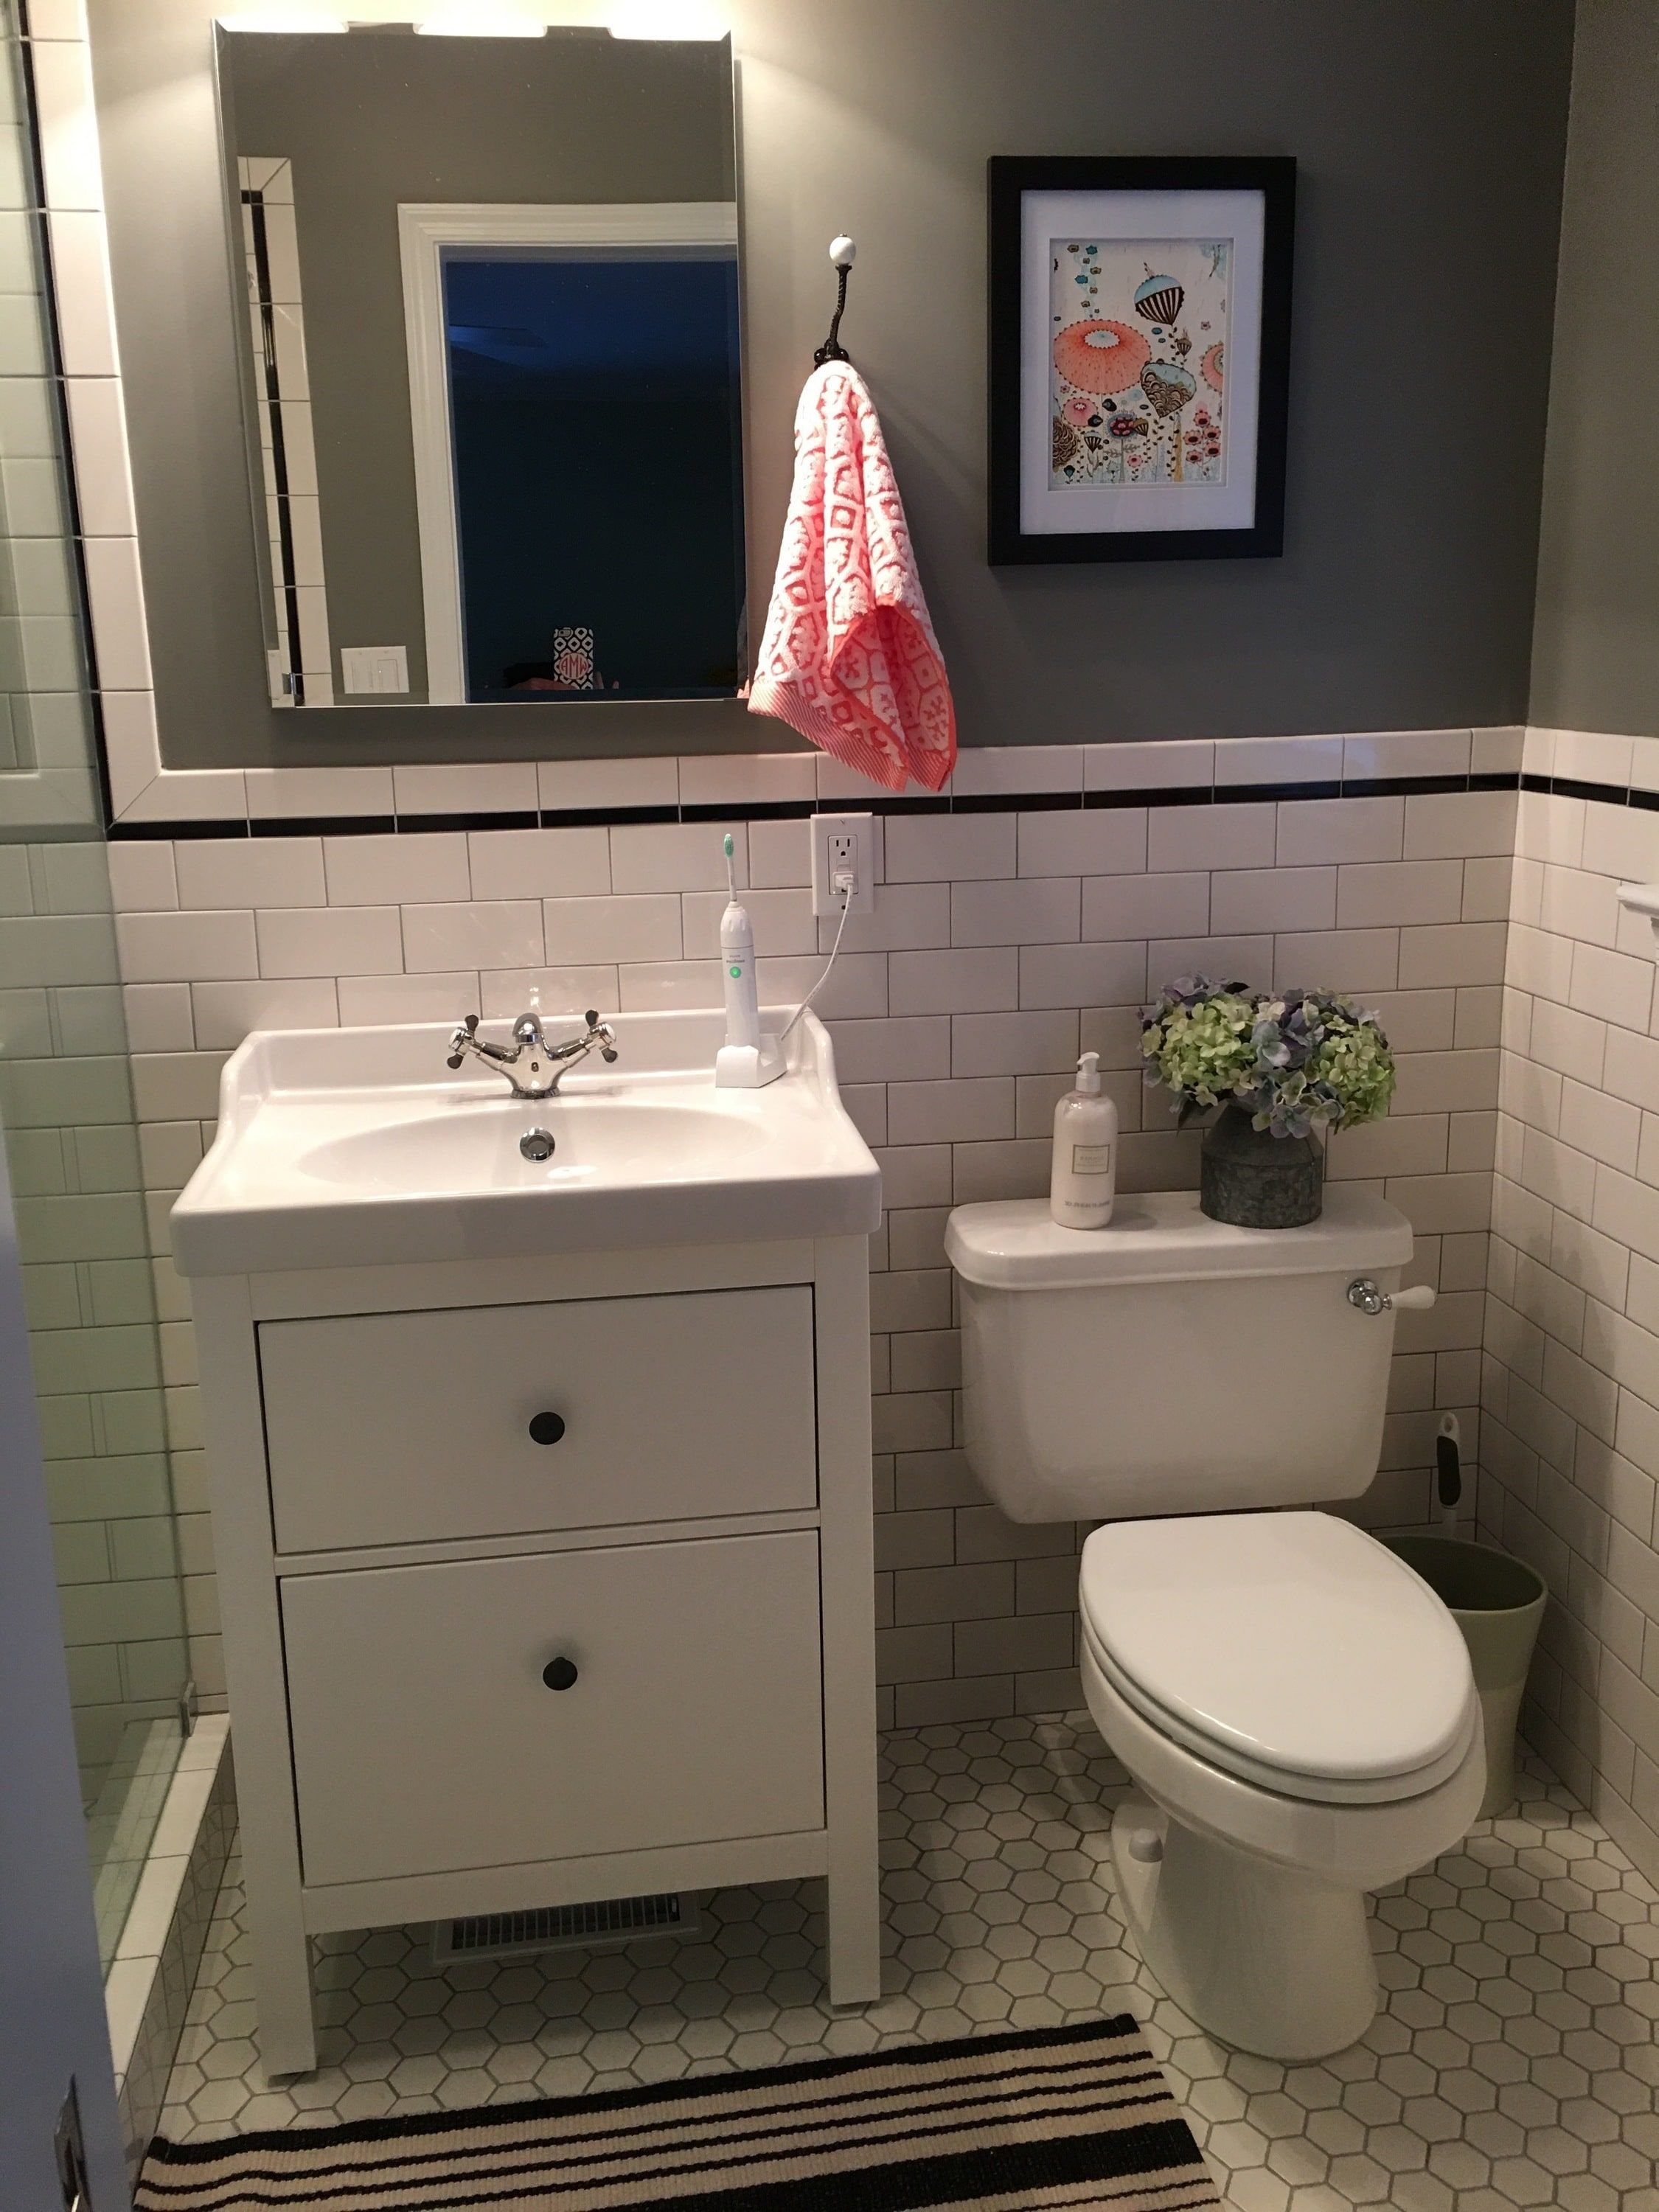 Bathroom Interiors Small Bathroom With Ikea Sink And Hemnes Cabinet More Bathroom